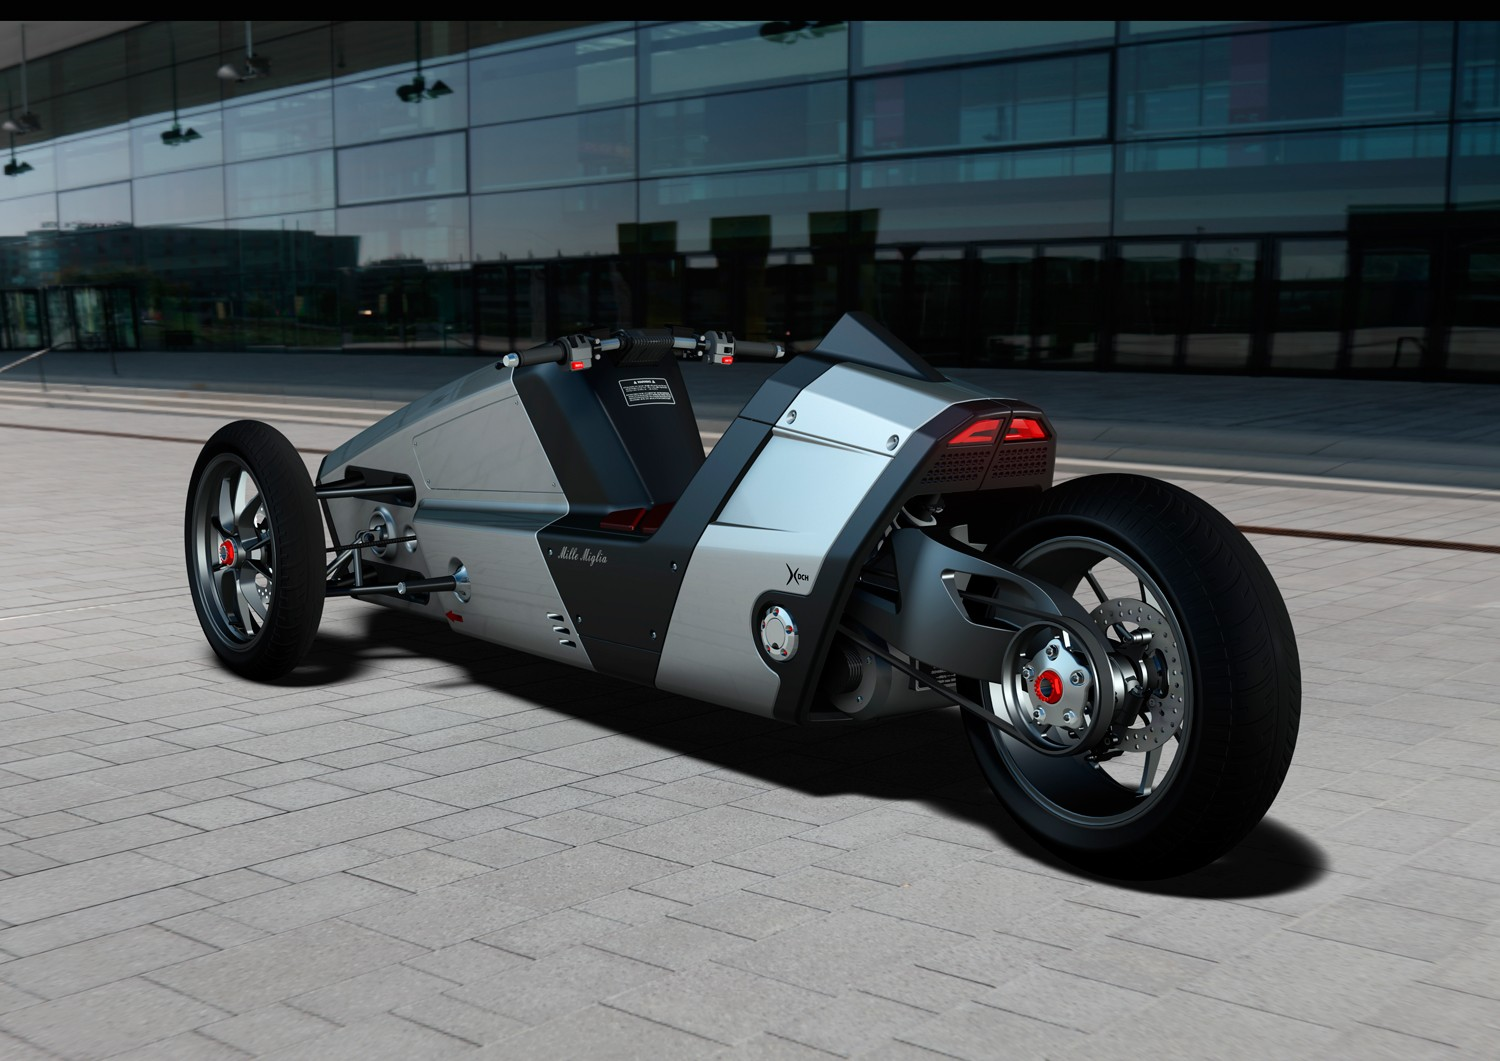 Sabertooth Trikes to Sport Rear-Wheel Steering - autoevolution